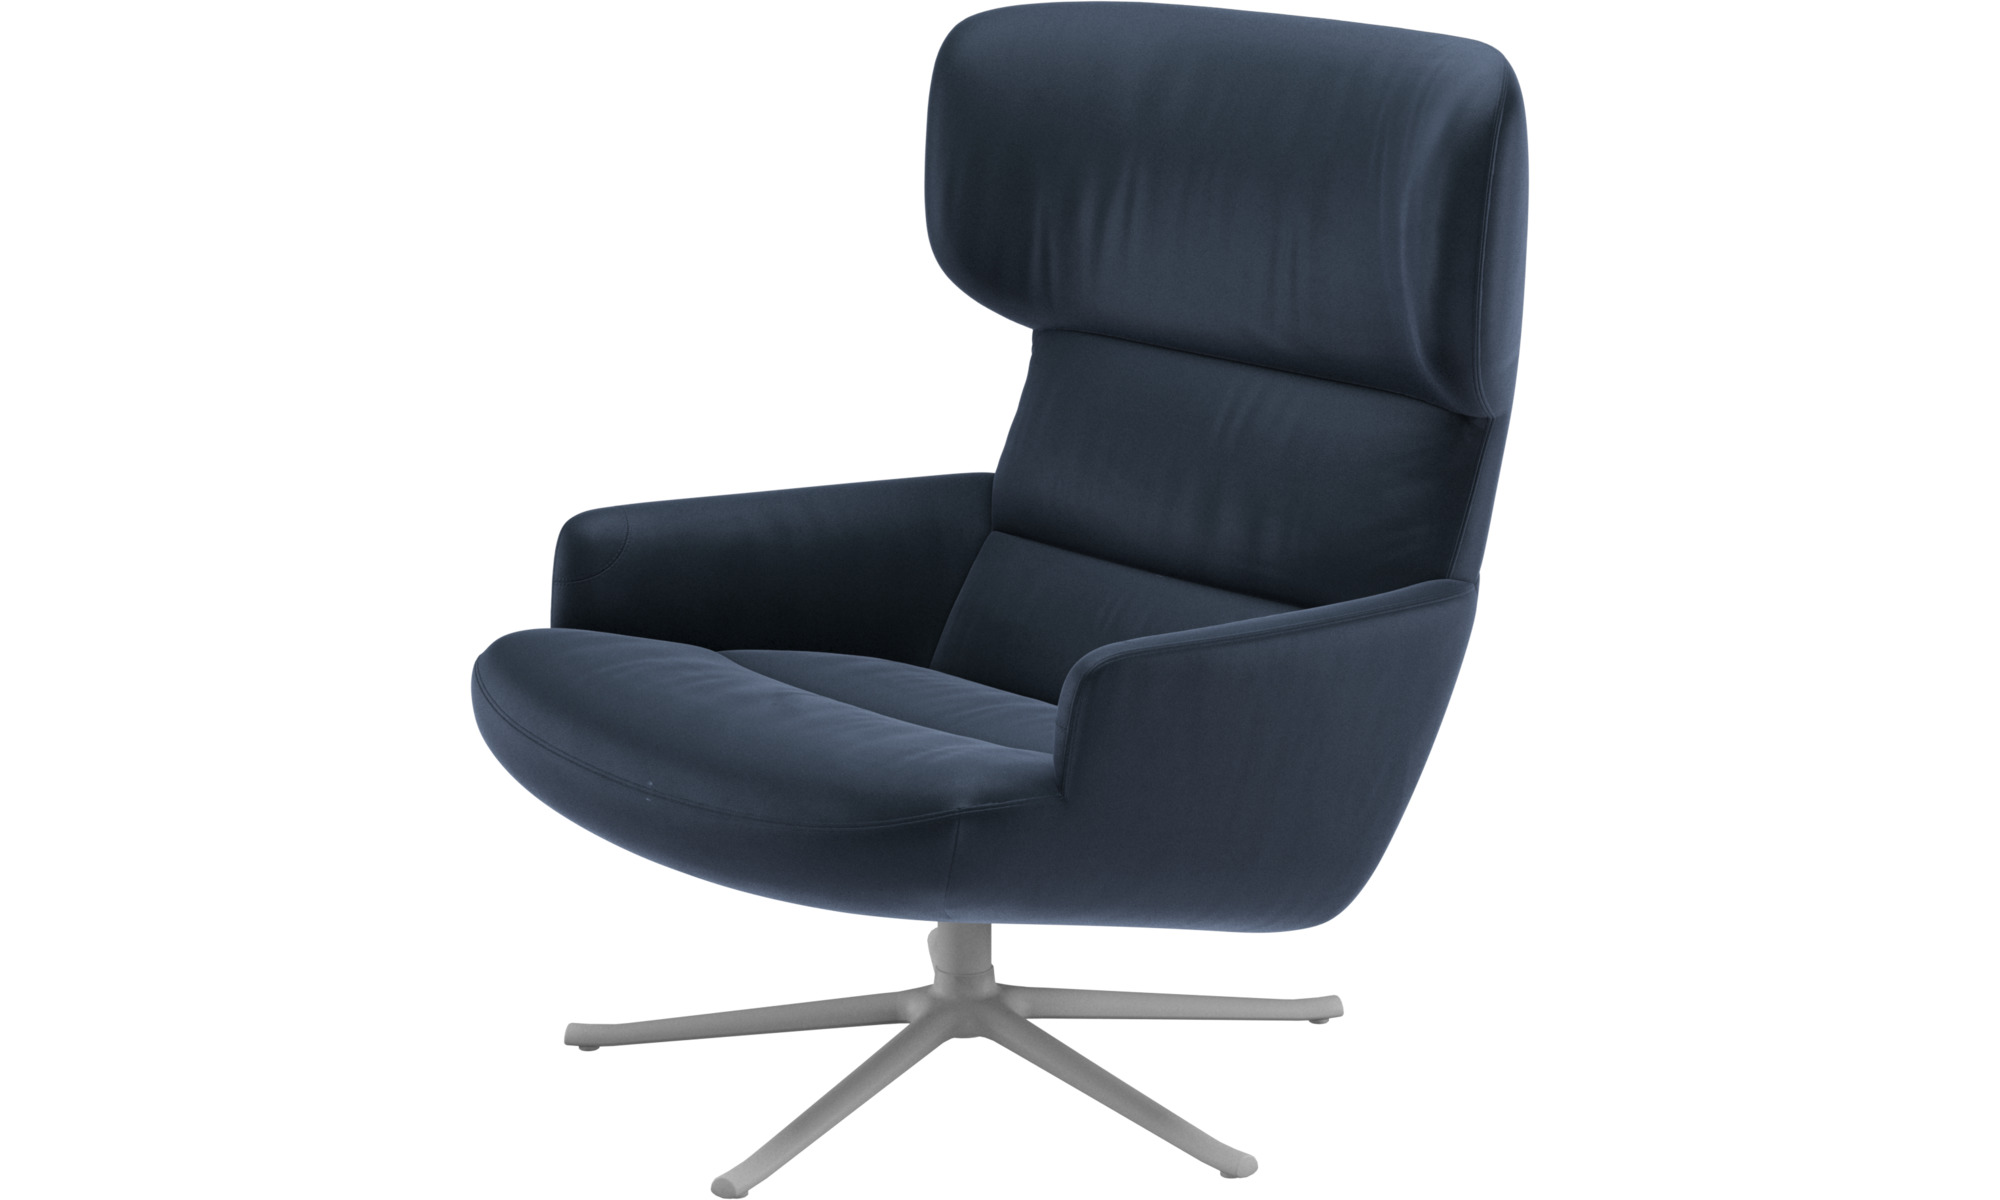 Armchairs - Trento chair with swivel function - Blue - Leather